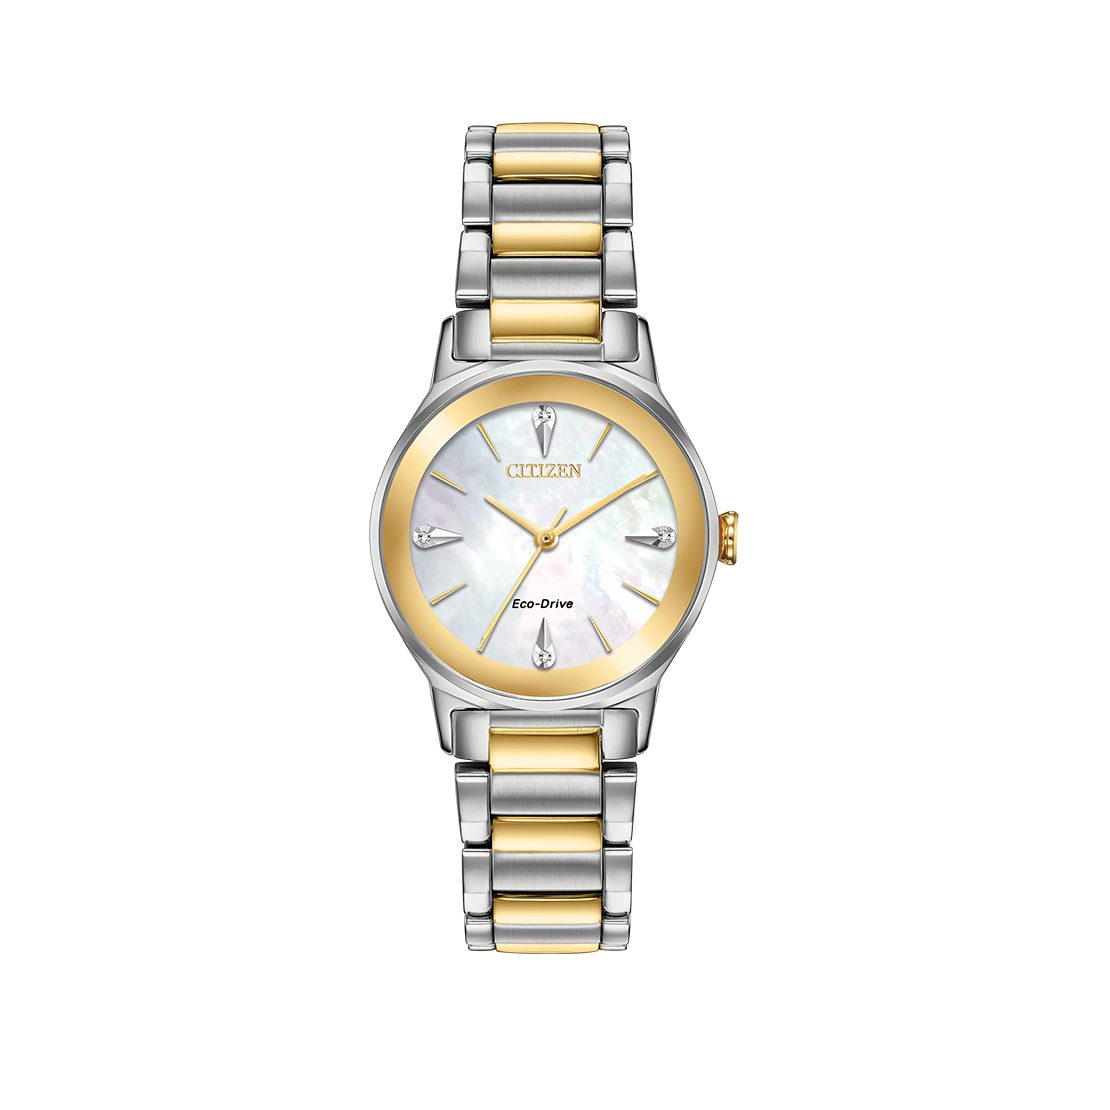 Women's Citizen Watch two-tone stainless steel case with Eco-Drive lithium ion battery